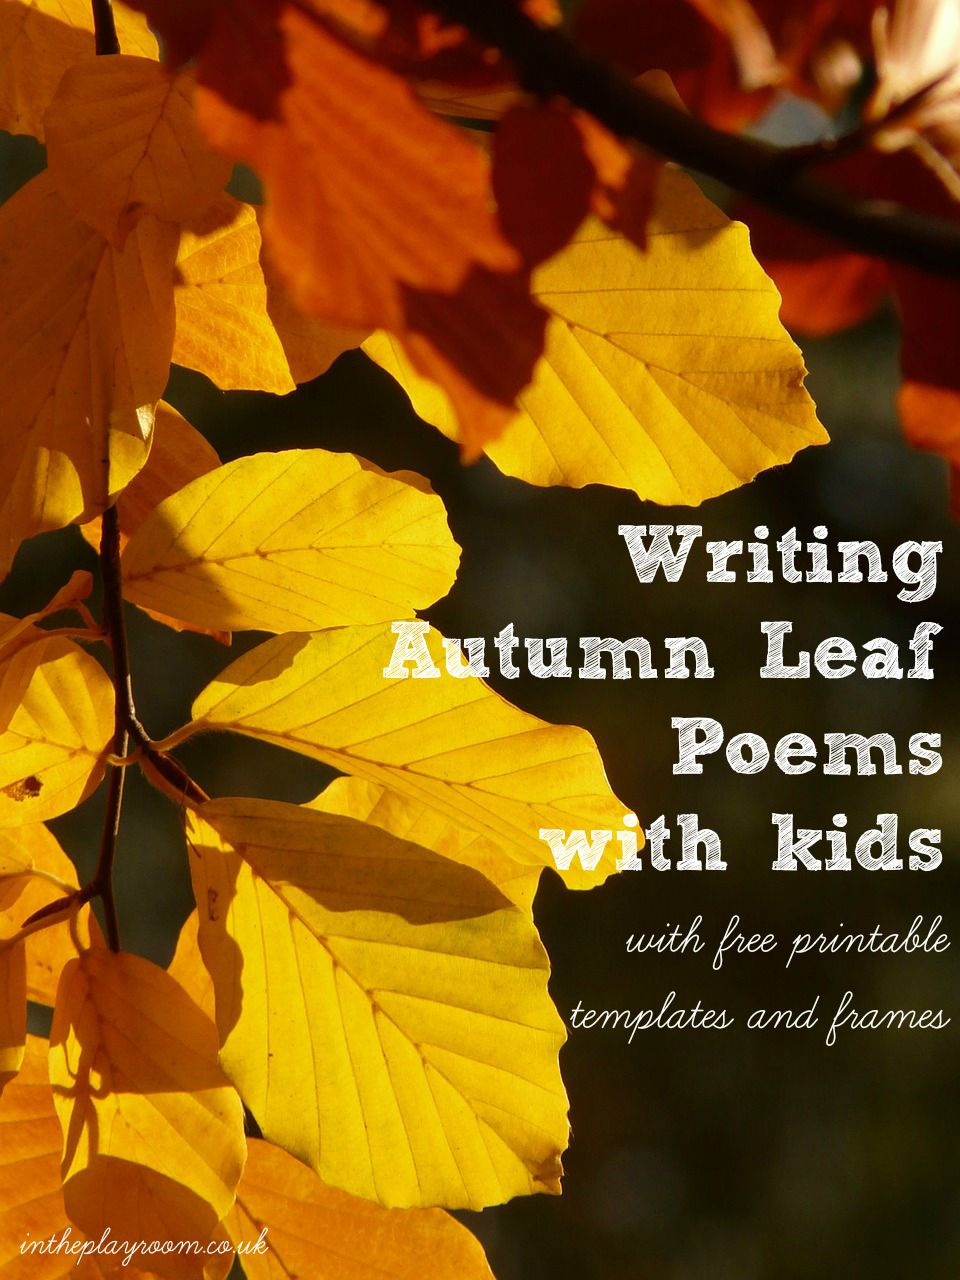 Writing autumn leaf poems with kids. With free printable templates and frames to use.  Fun nature based literacy activity for kids this fall